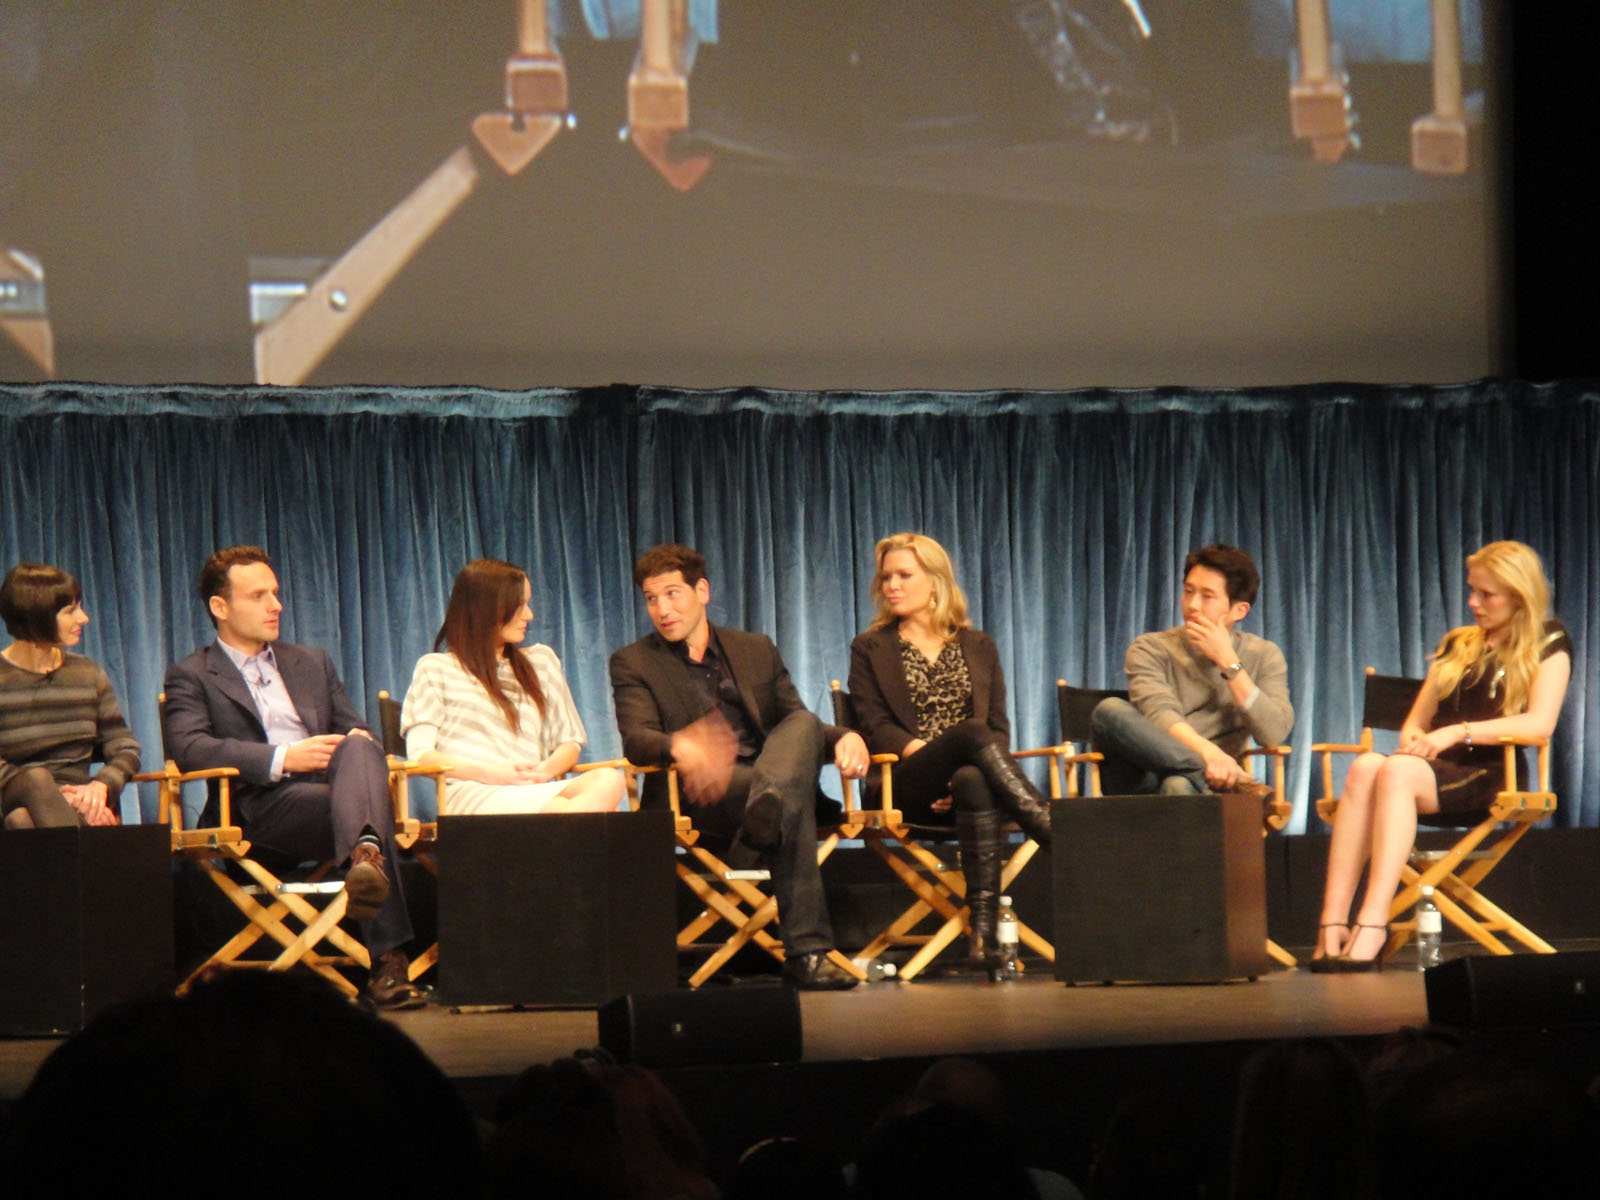 The Walking Dead Paley Fest Panel Discussion